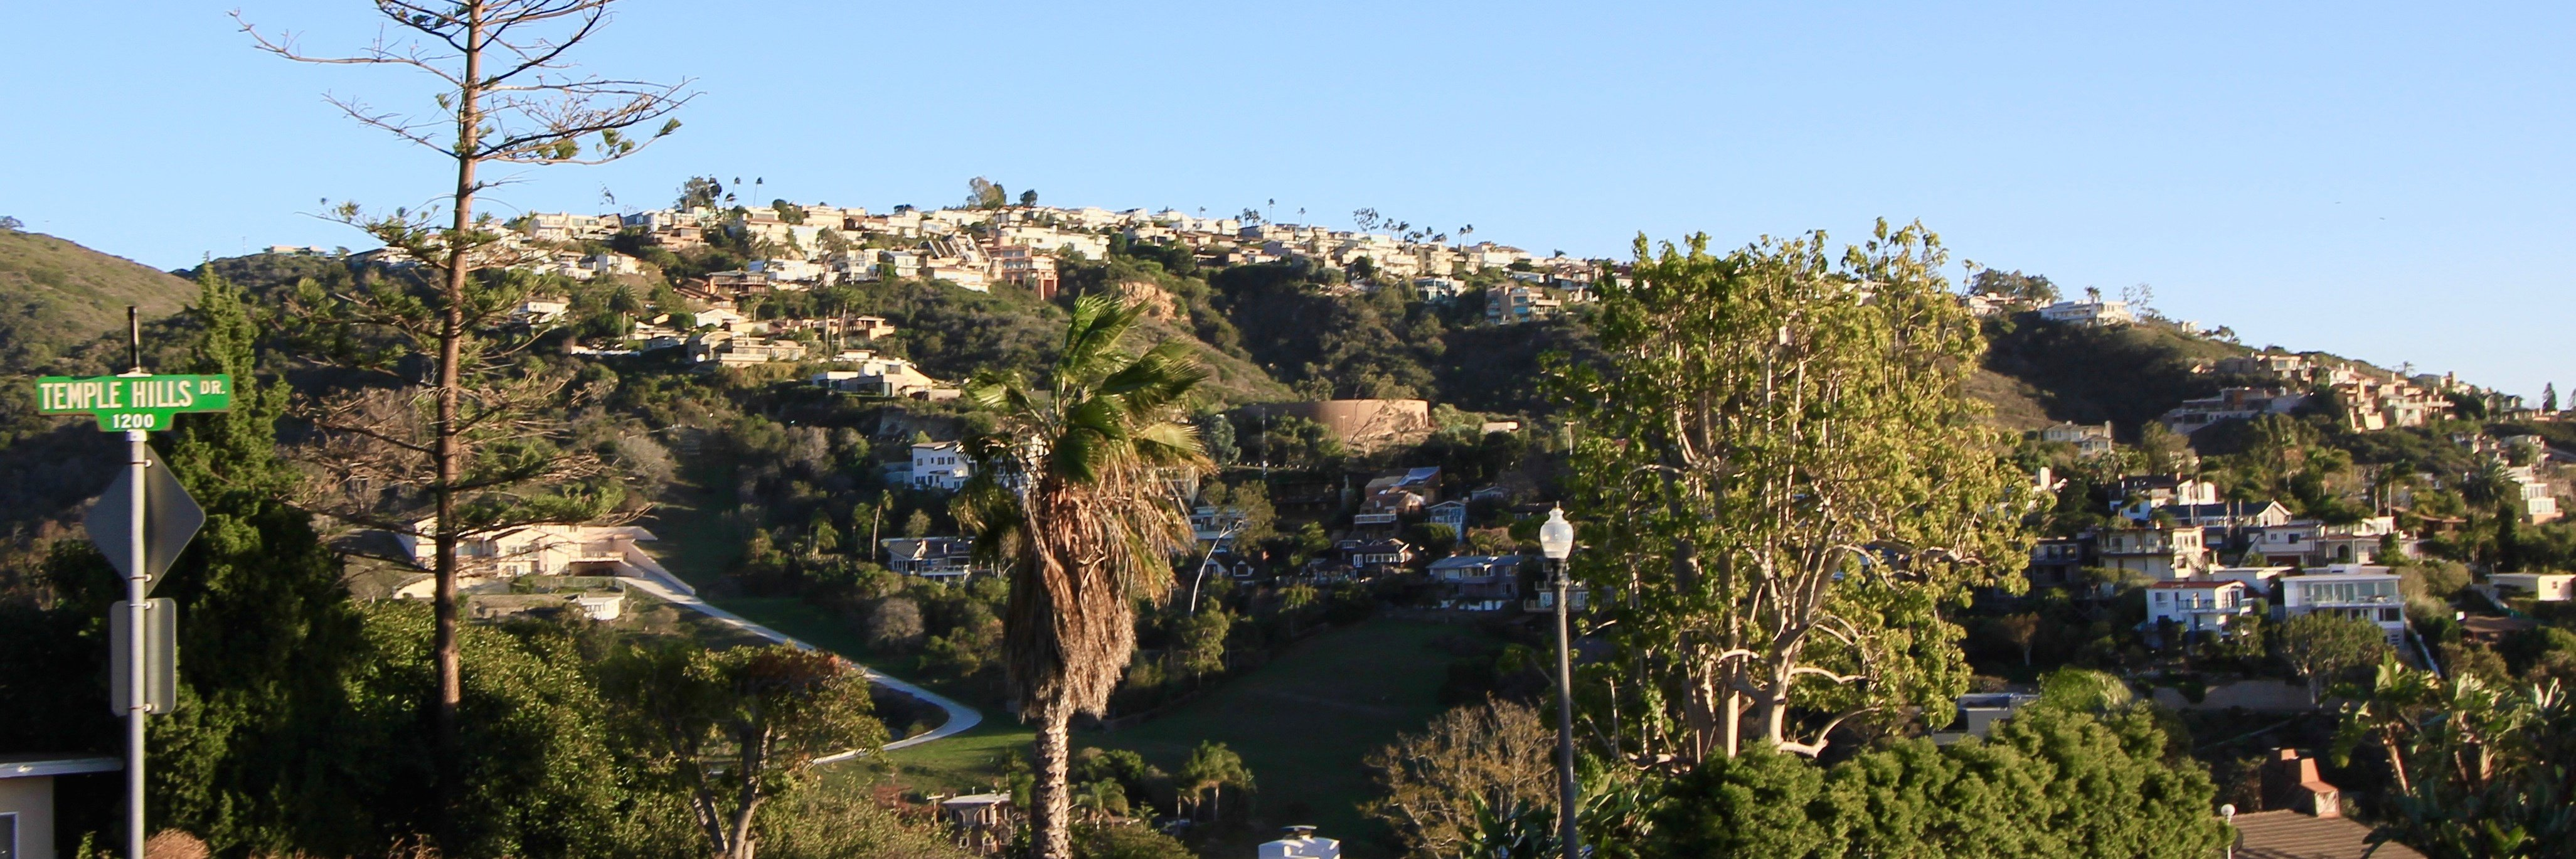 Temple Hills is a high end hillside beach community in Laguna Beach CA